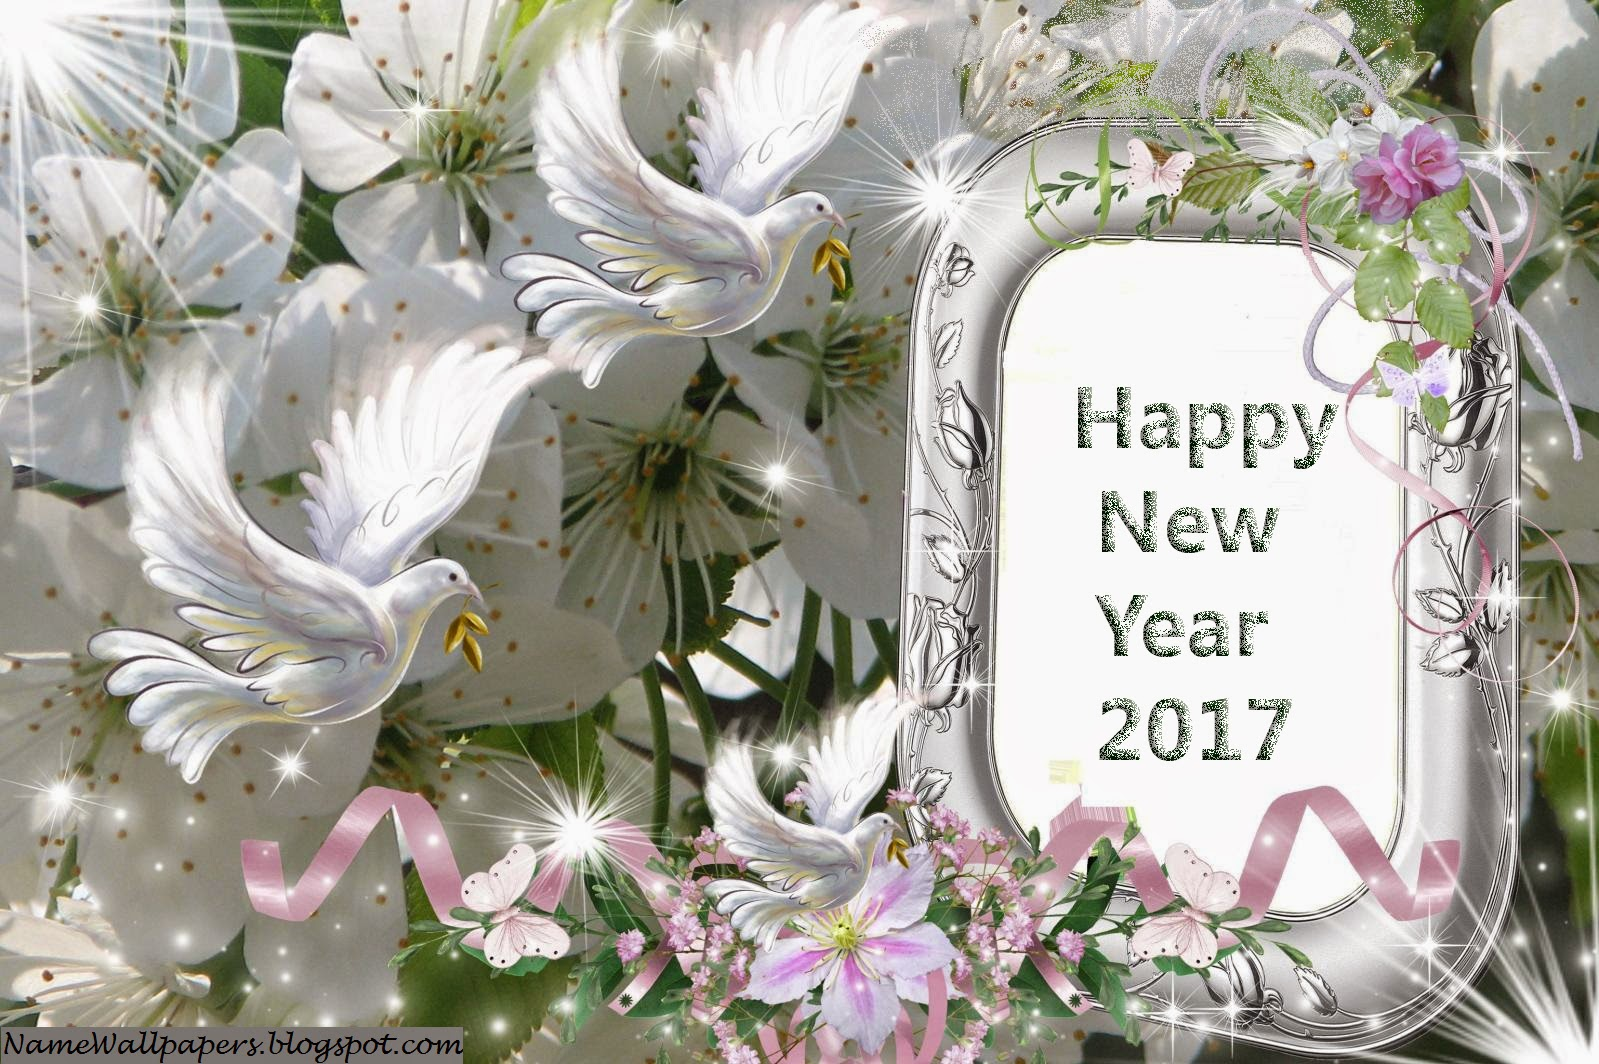 Happy New Year 2017 Wallpapers HD Images Pictures 2017 ... Happy New Year 2017 Wallpaper 3d